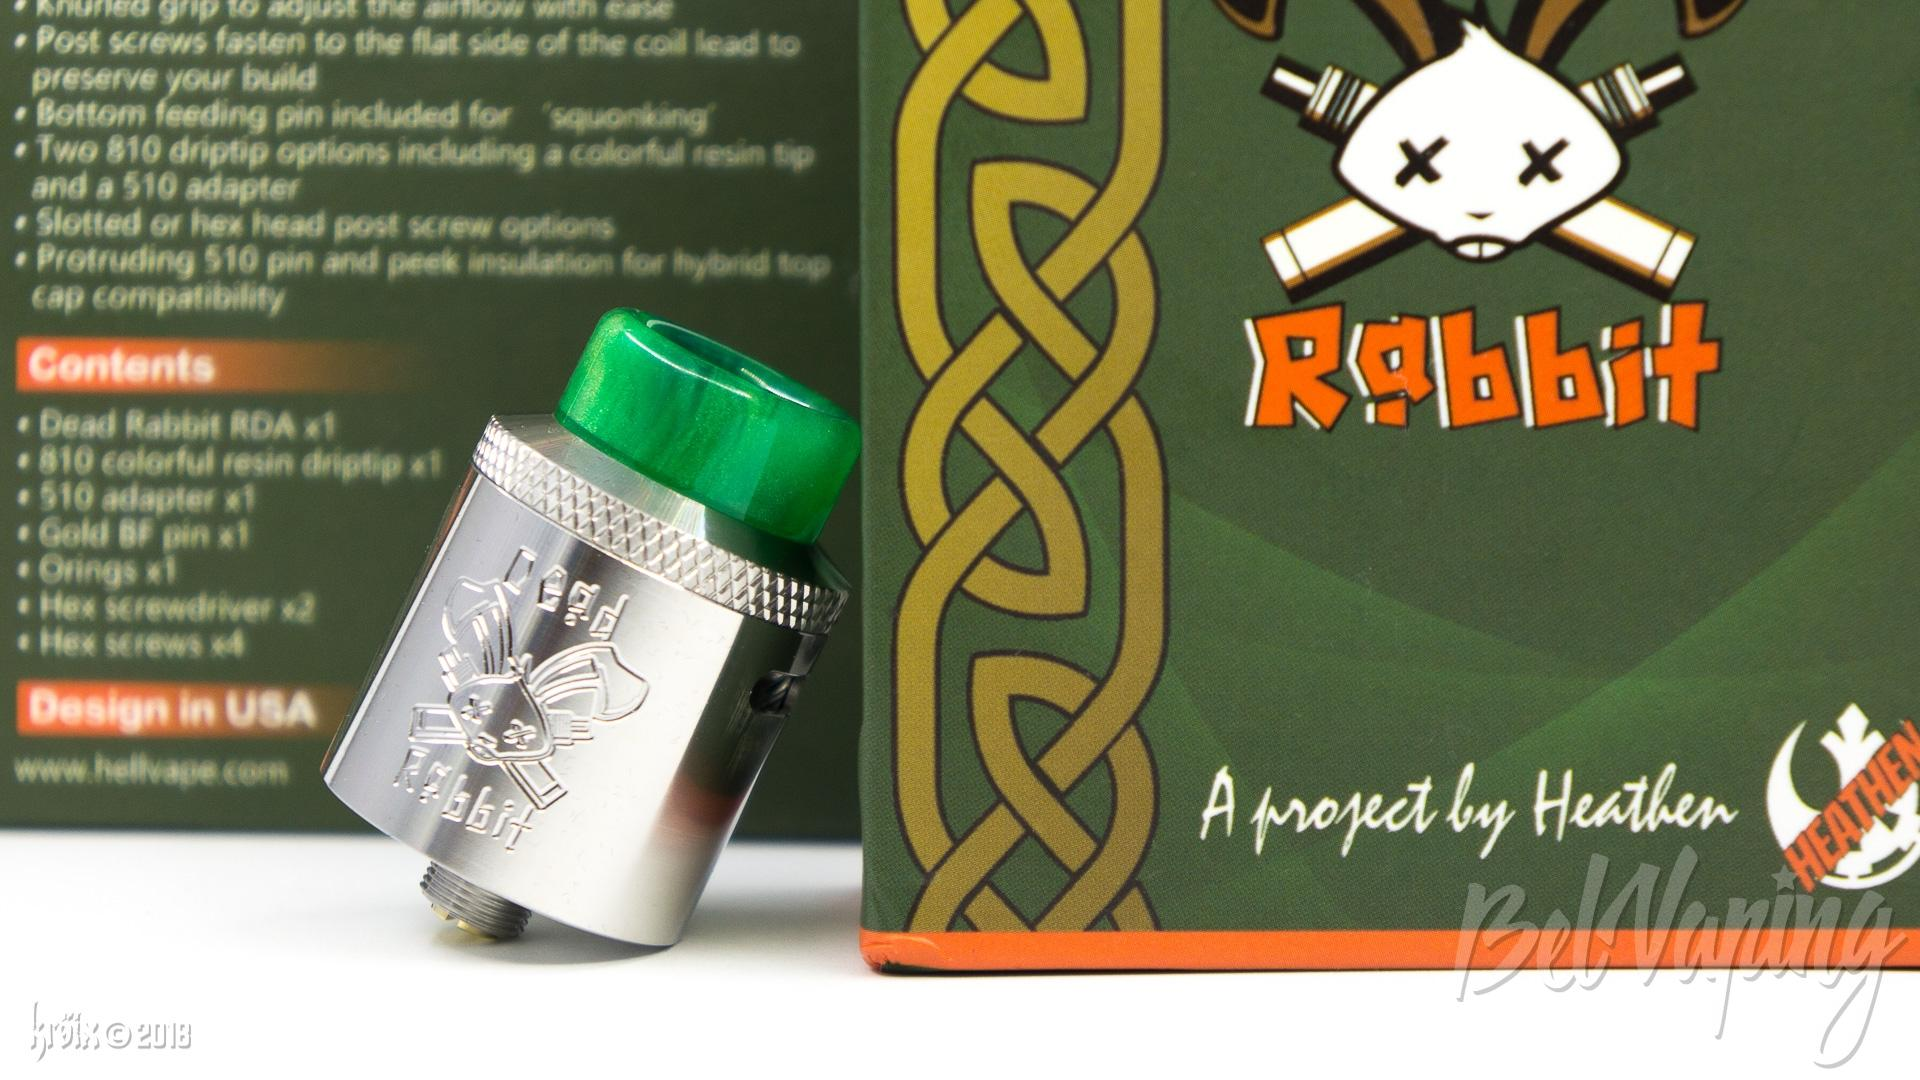 Обзор дрипки Dead Rabbit RDA